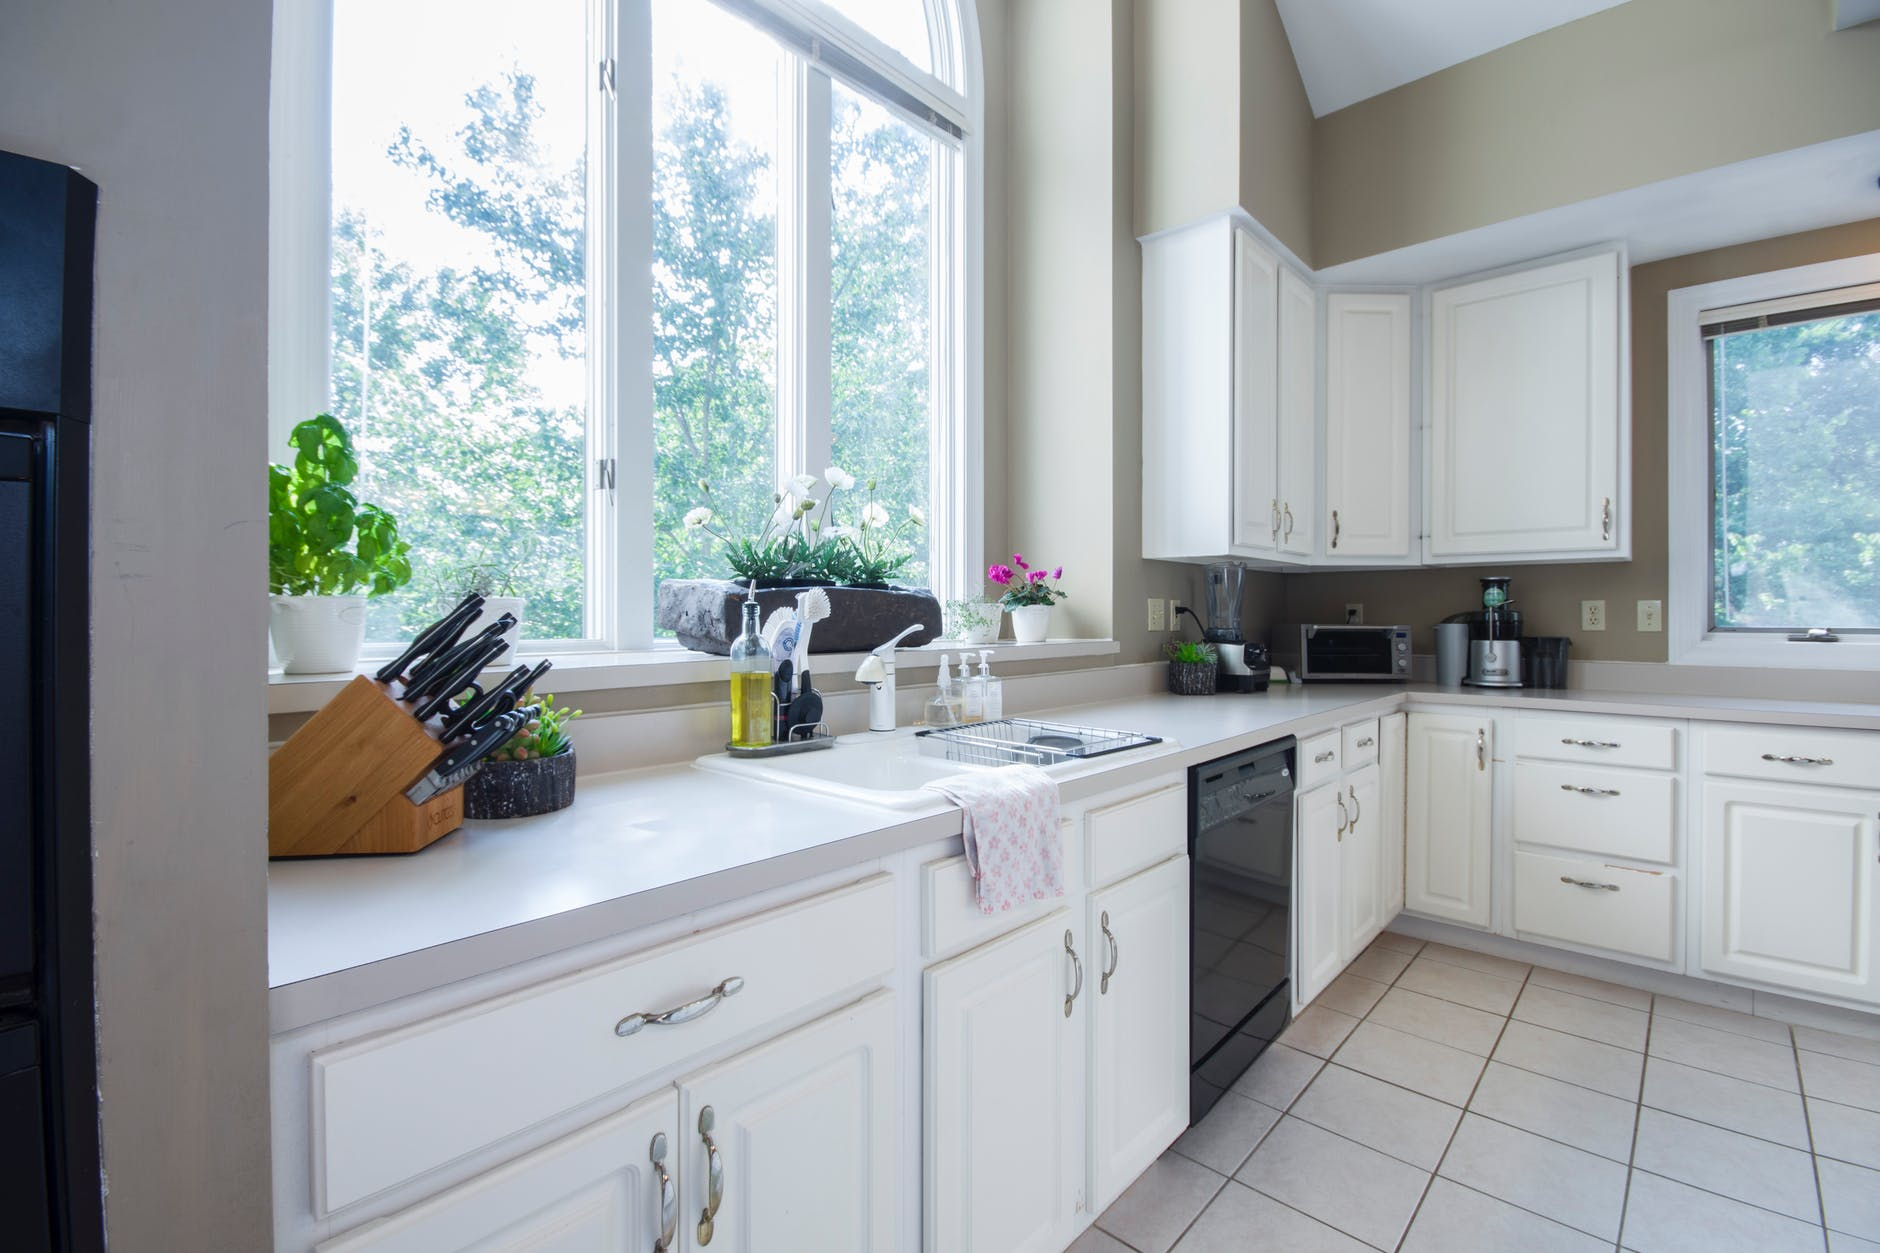 Some of the benefits of Kitchen Remodeling